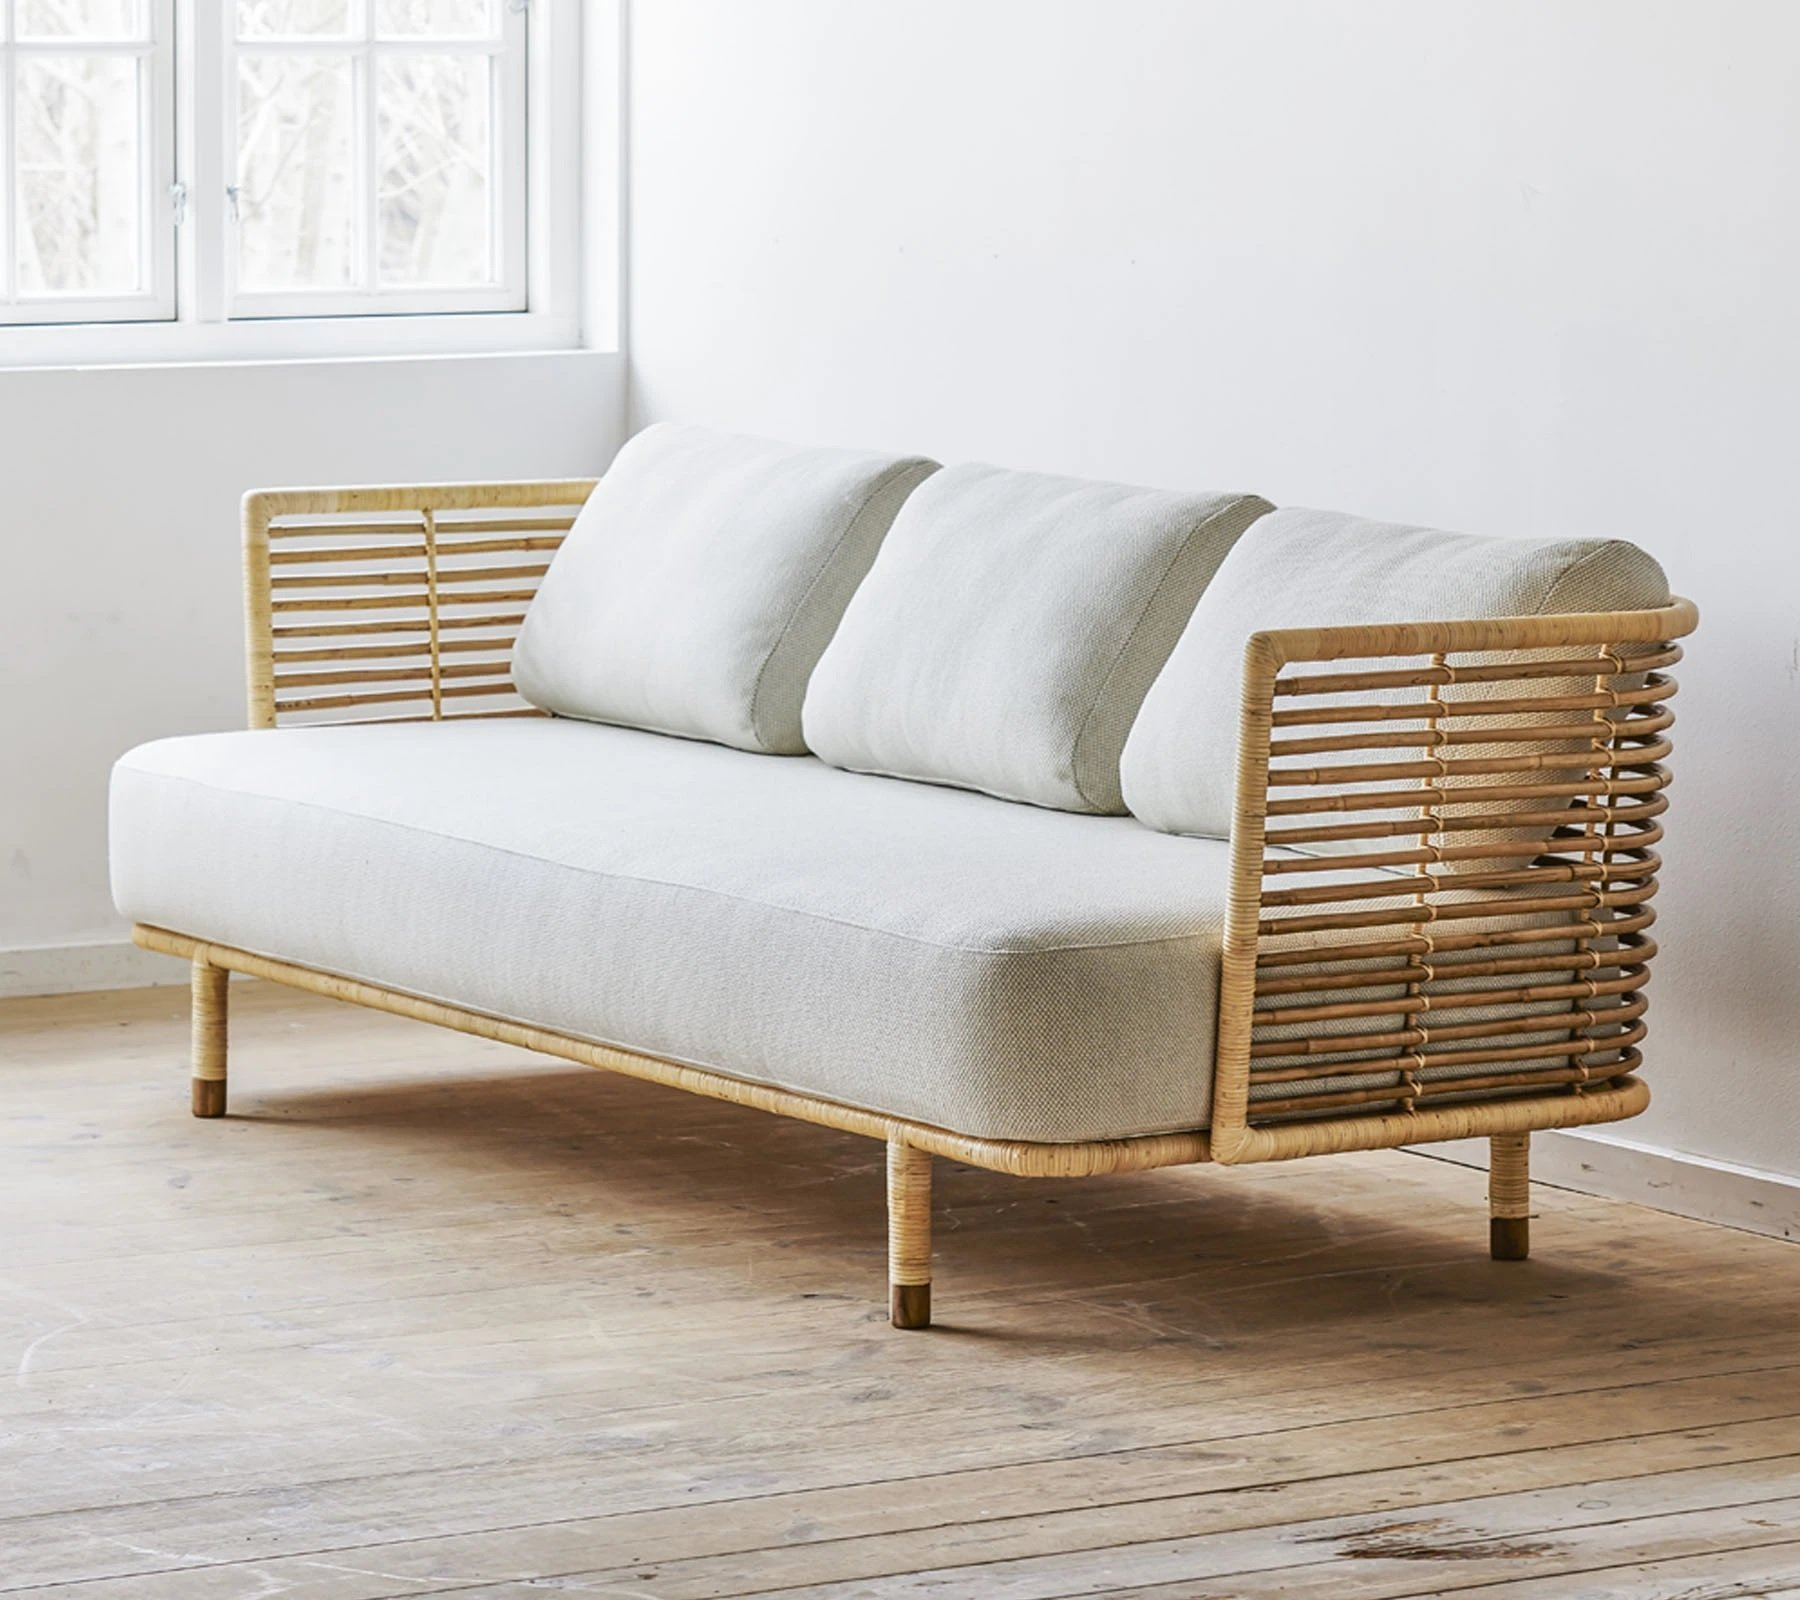 Sense 3-Seater Sofa from Cane-line, designed by Foersom & Hiort-Lorenzen MDD